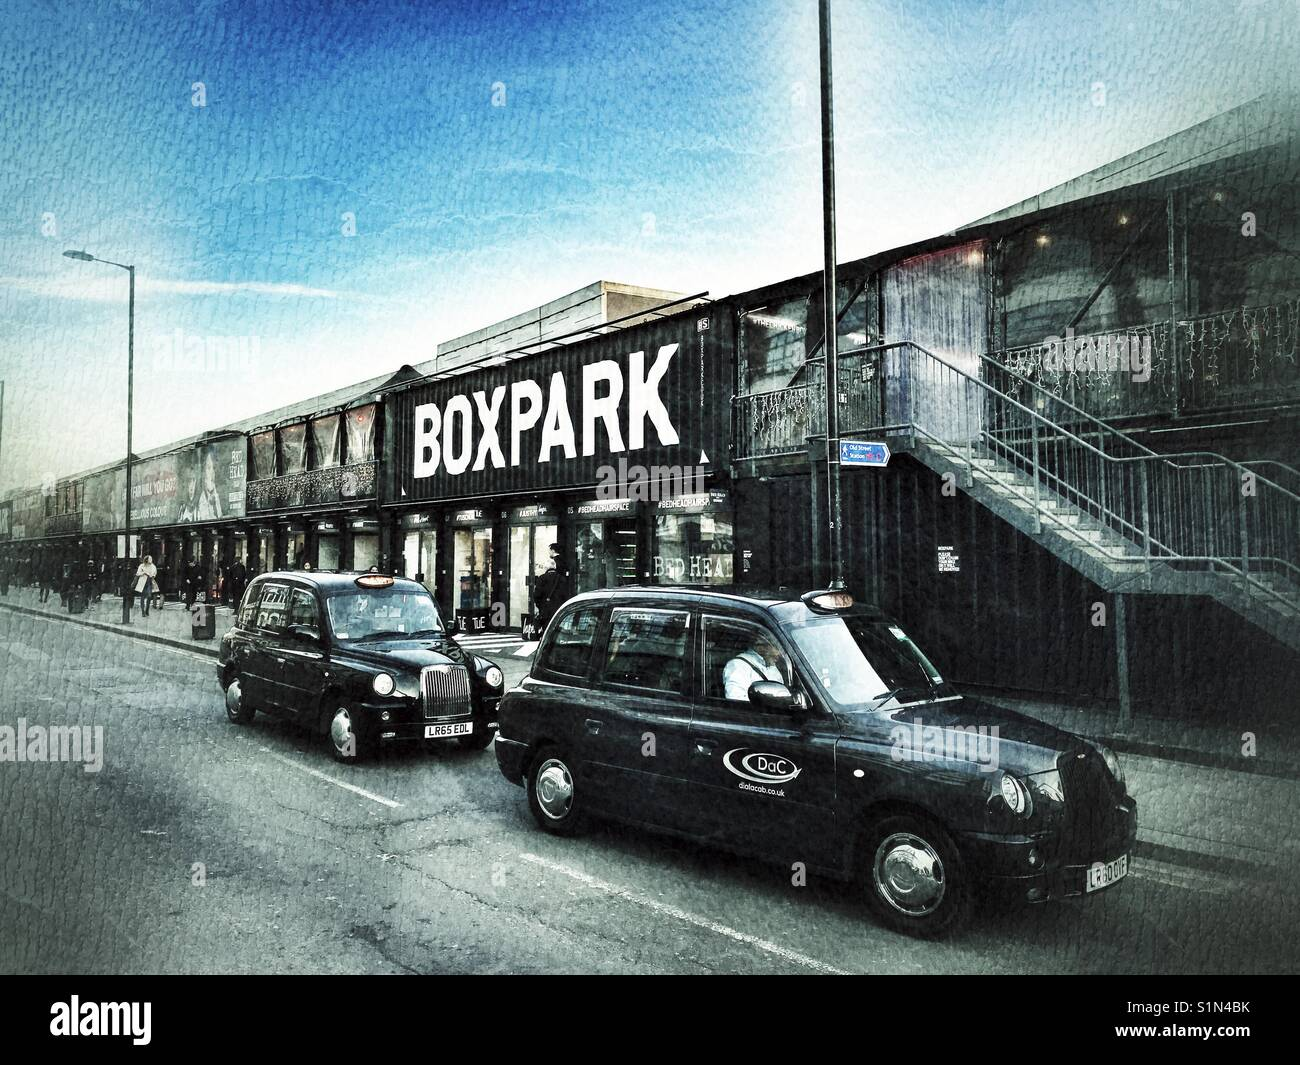 Two London black cabs at Shoreditch Boxpark - Stock Image